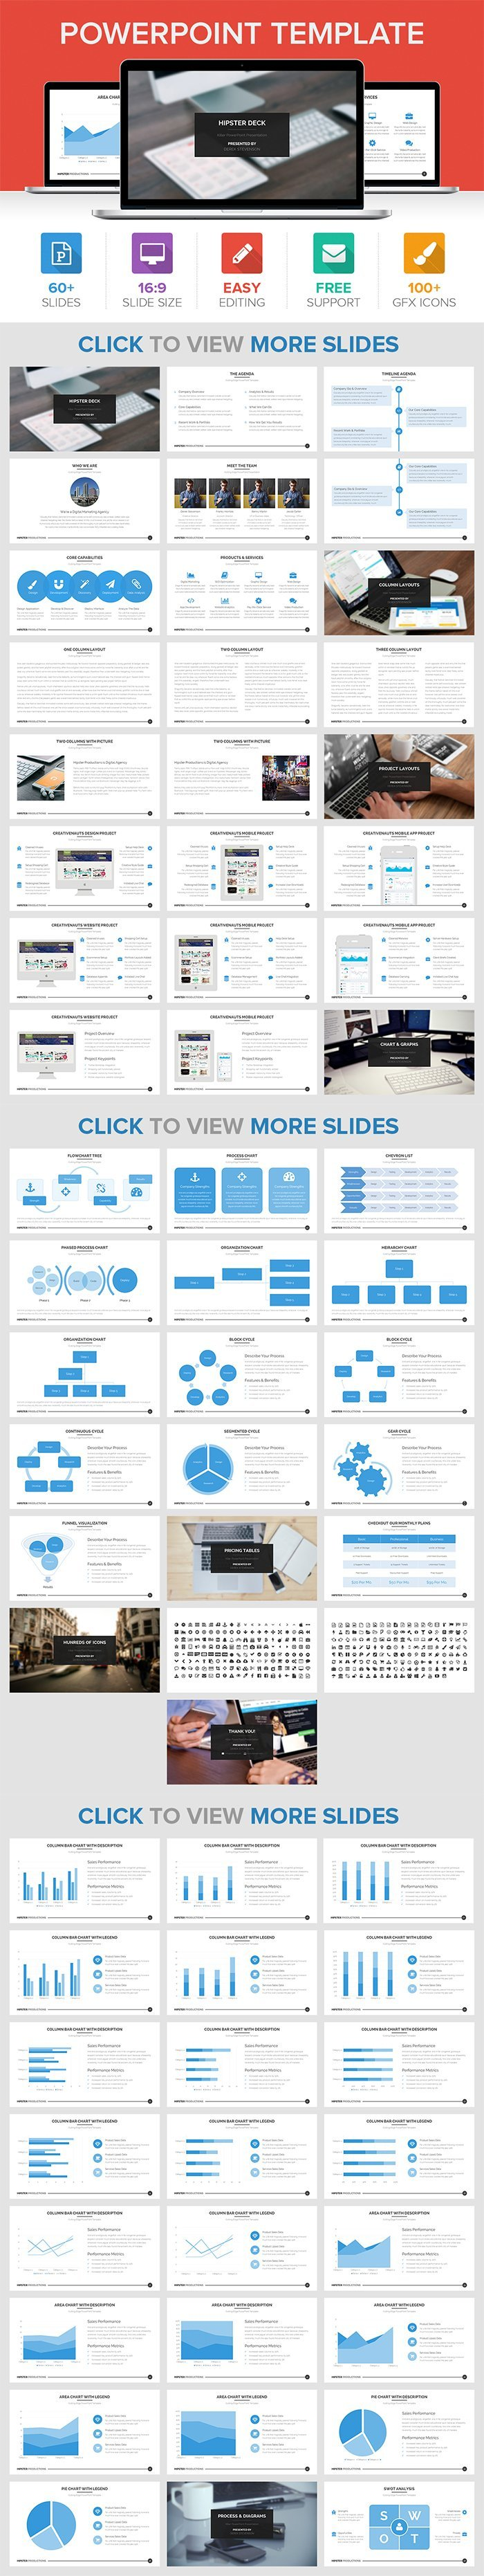 Get 5 best powerpoint templates for only 15 inkydeals hipster powerpoint template toneelgroepblik Choice Image